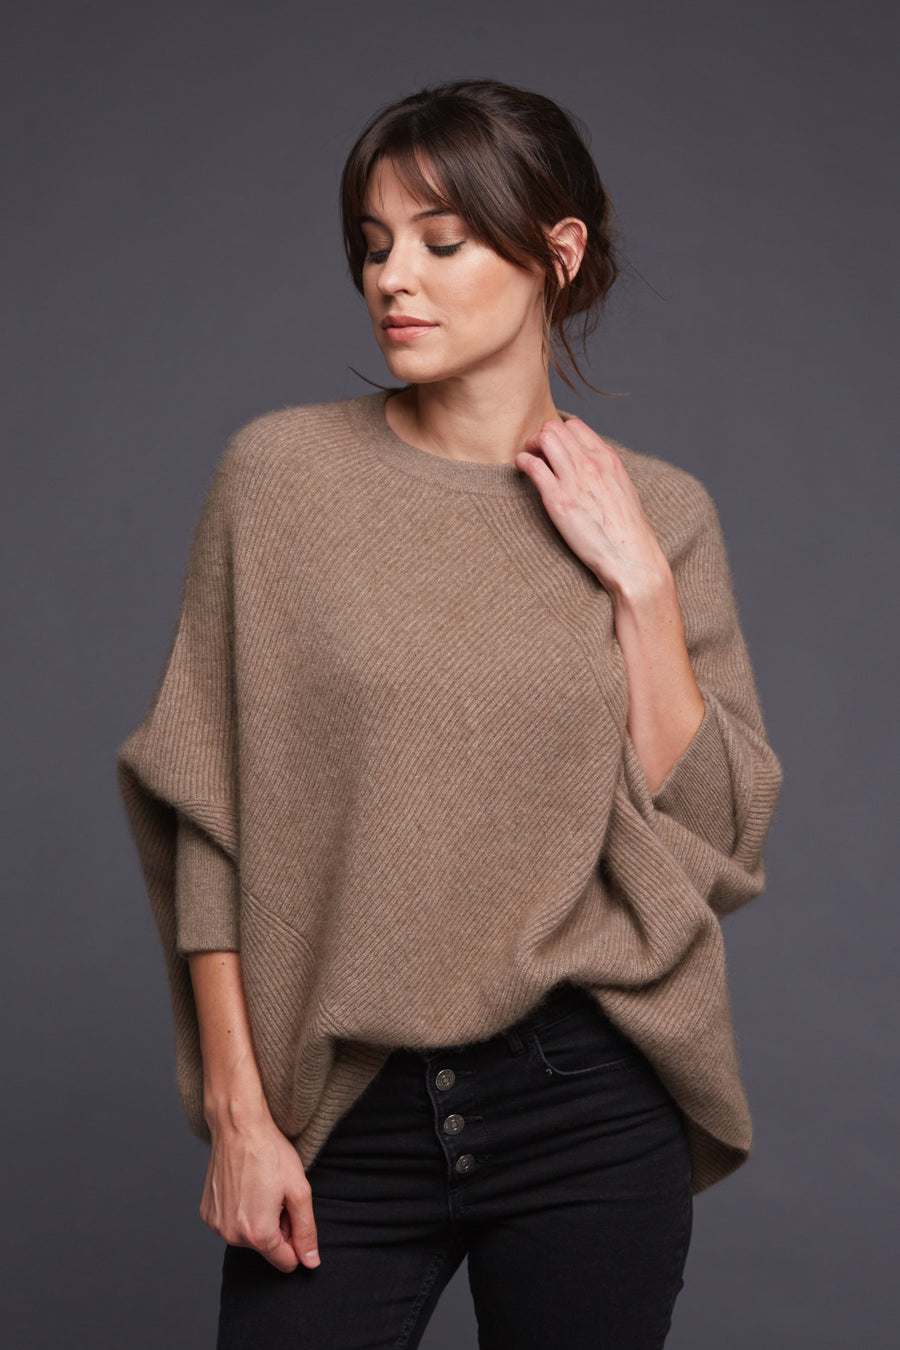 pine cashmere women's cara crewneck 100% pure organic cashmere poncho sweater in brown